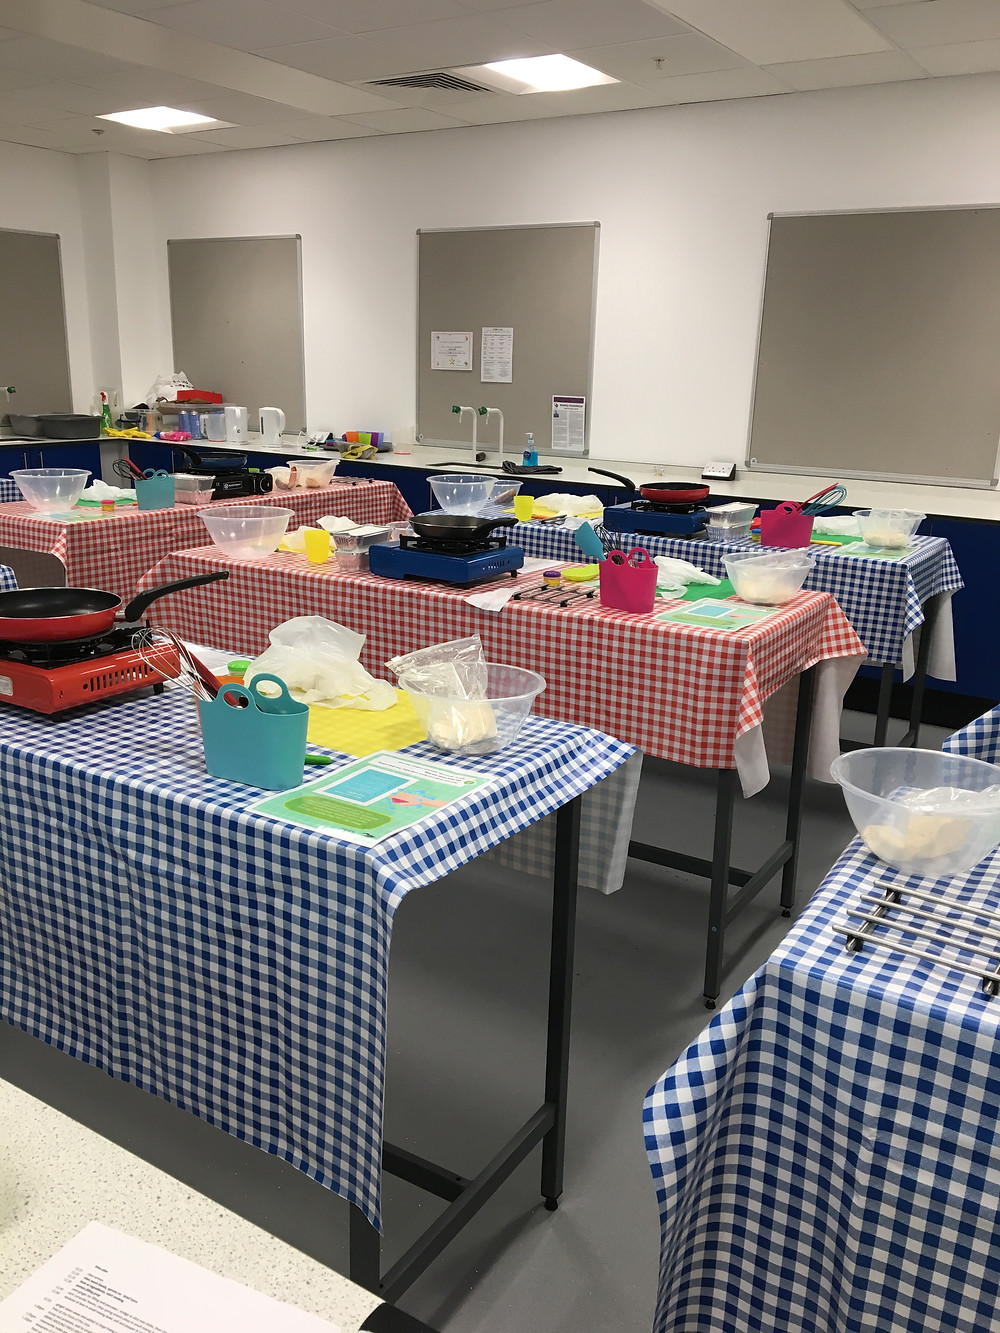 Our cookery class all set up ready to go